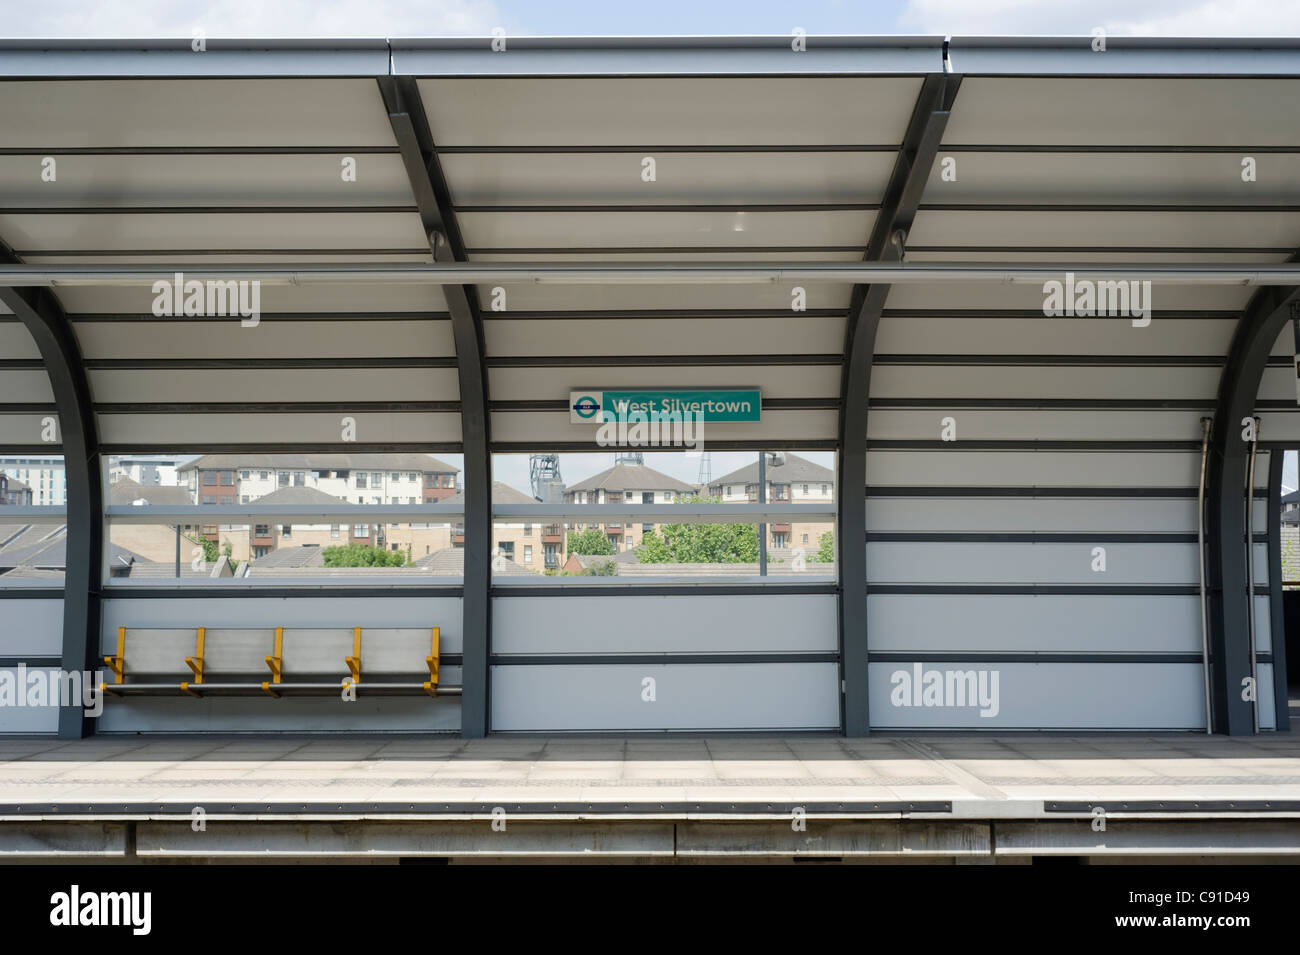 West Silvertown is a station on the Docklands Light Railway which opened in December 2005. It is located on the - Stock Image